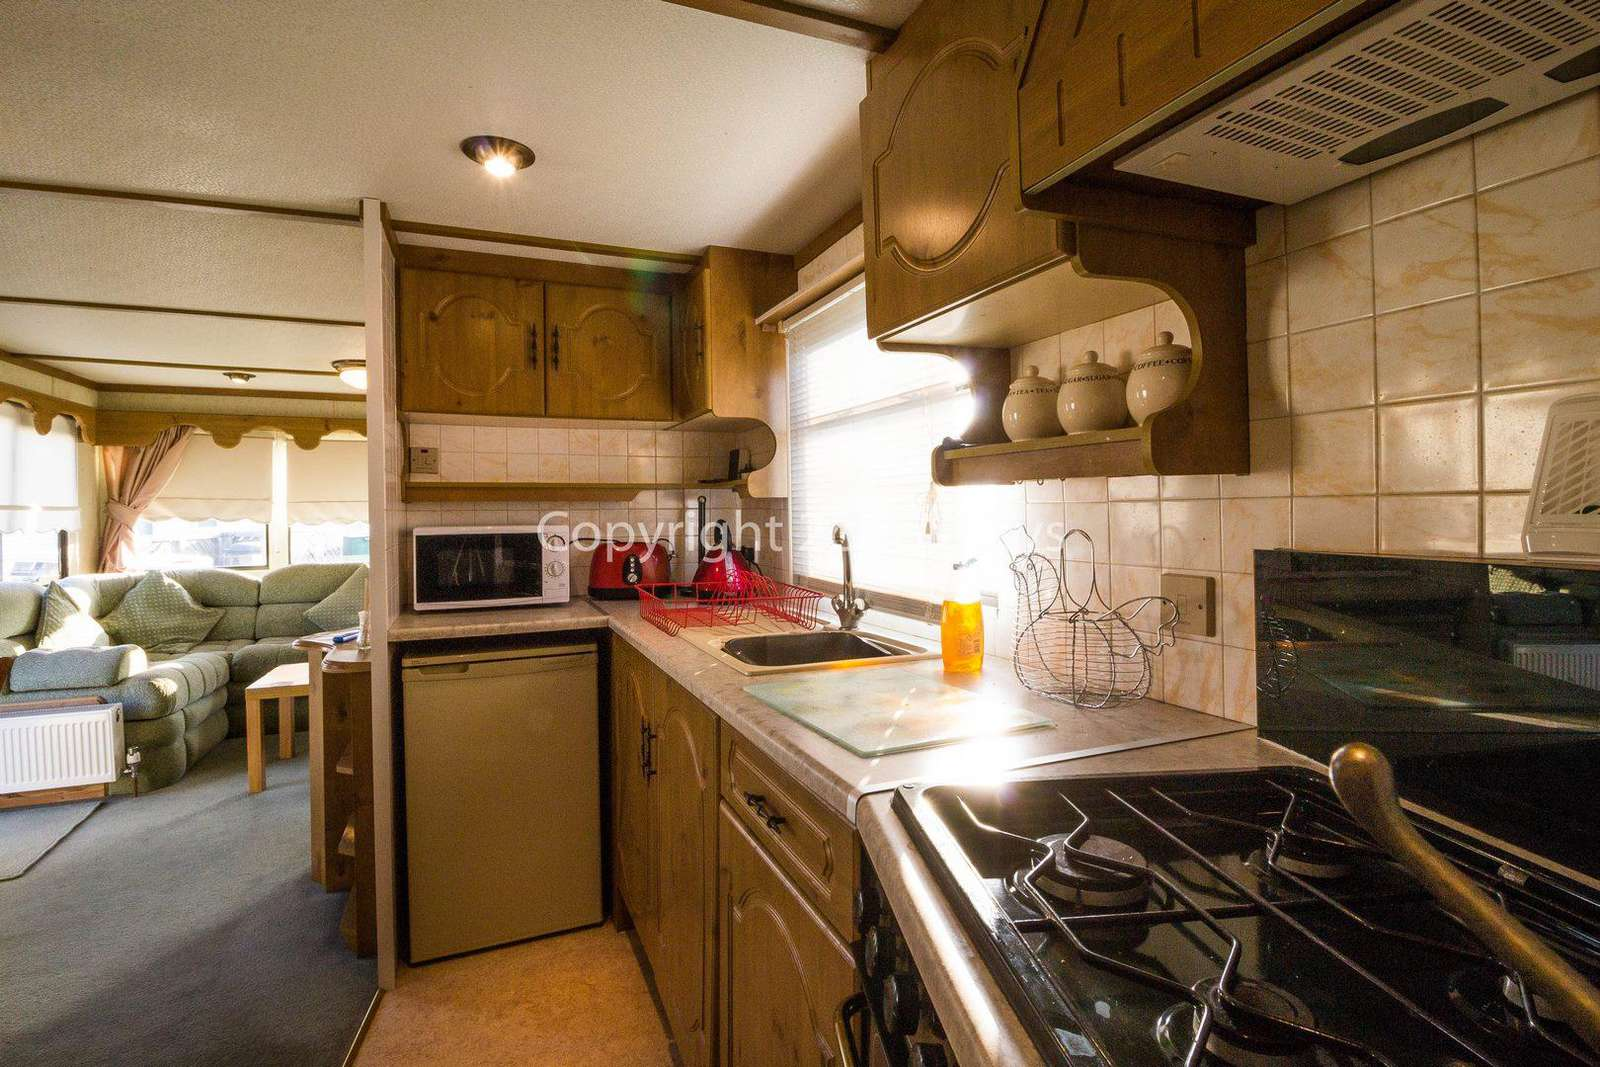 Come and stay in this private accommodation North Denes Holiday Park